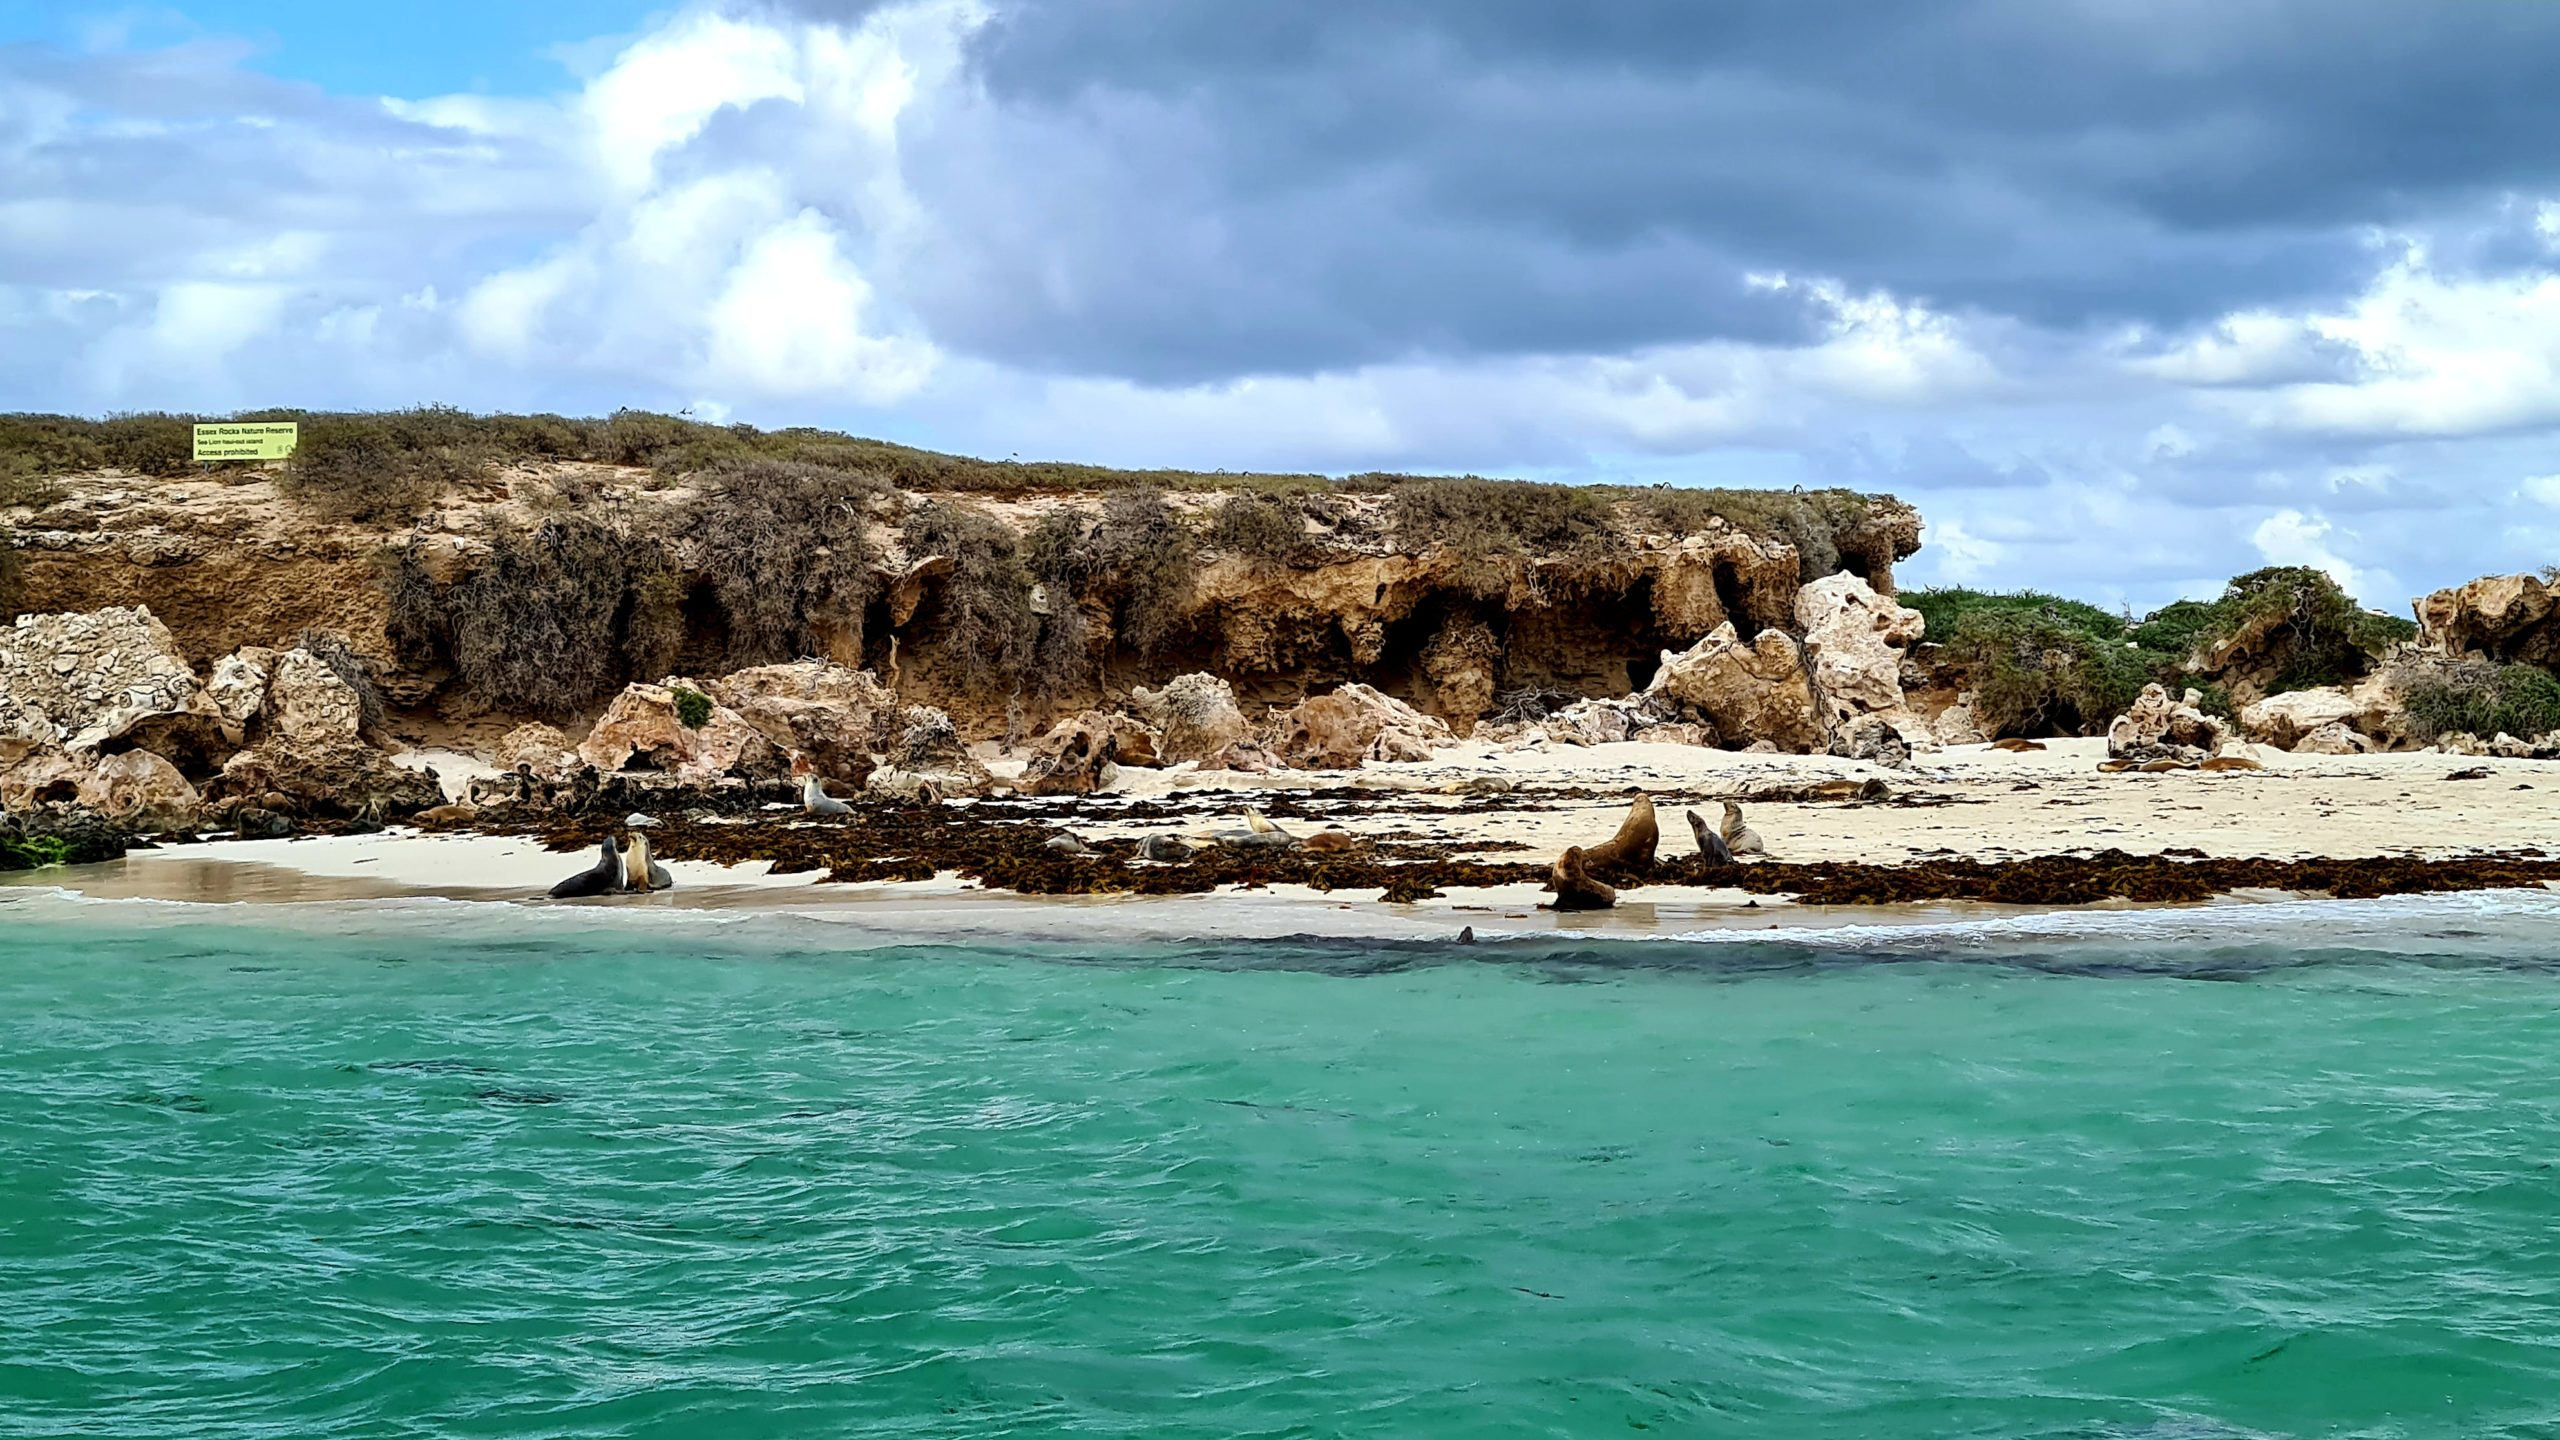 Top things to do in Jurien Bay swimming with sea lions